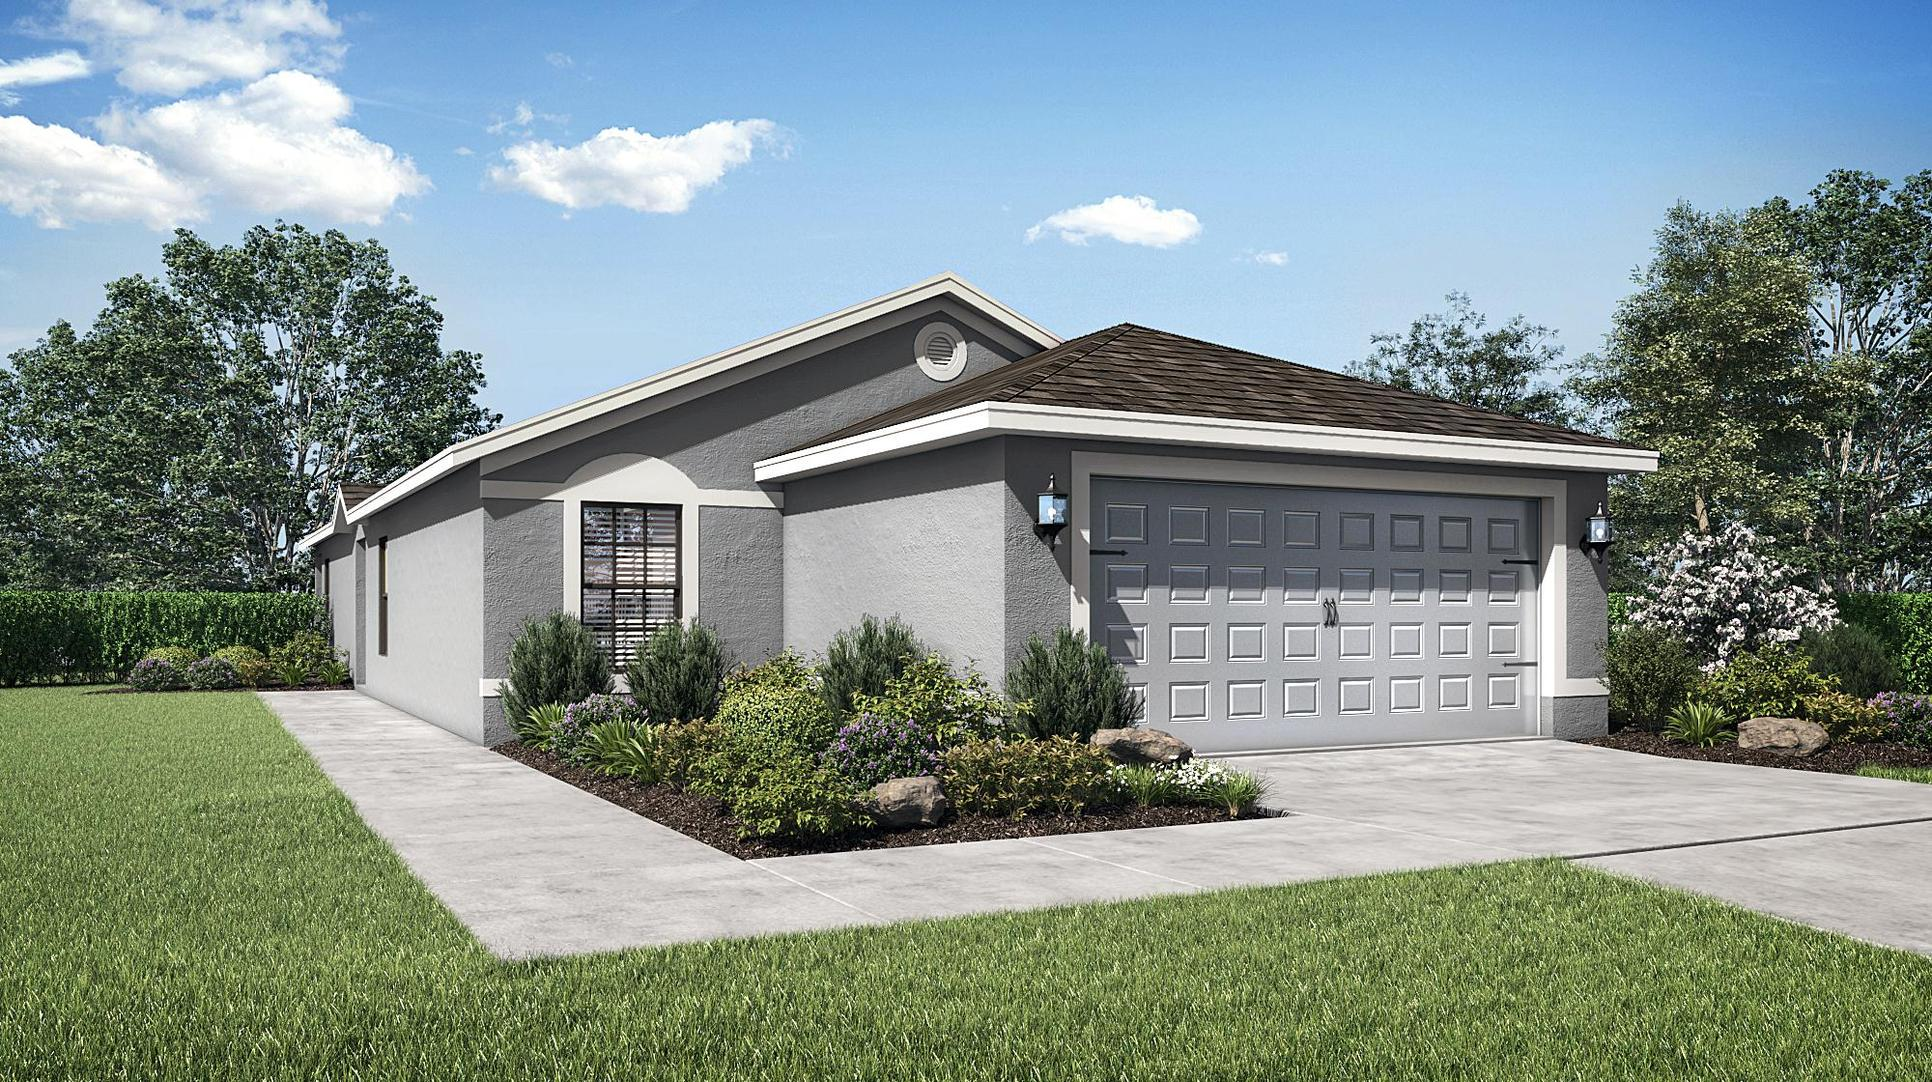 The Cocoa by LGI Homes:The Cocoa by LGI Homes features a gorgeous chef-ready kitchen and multiple spacious bedrooms